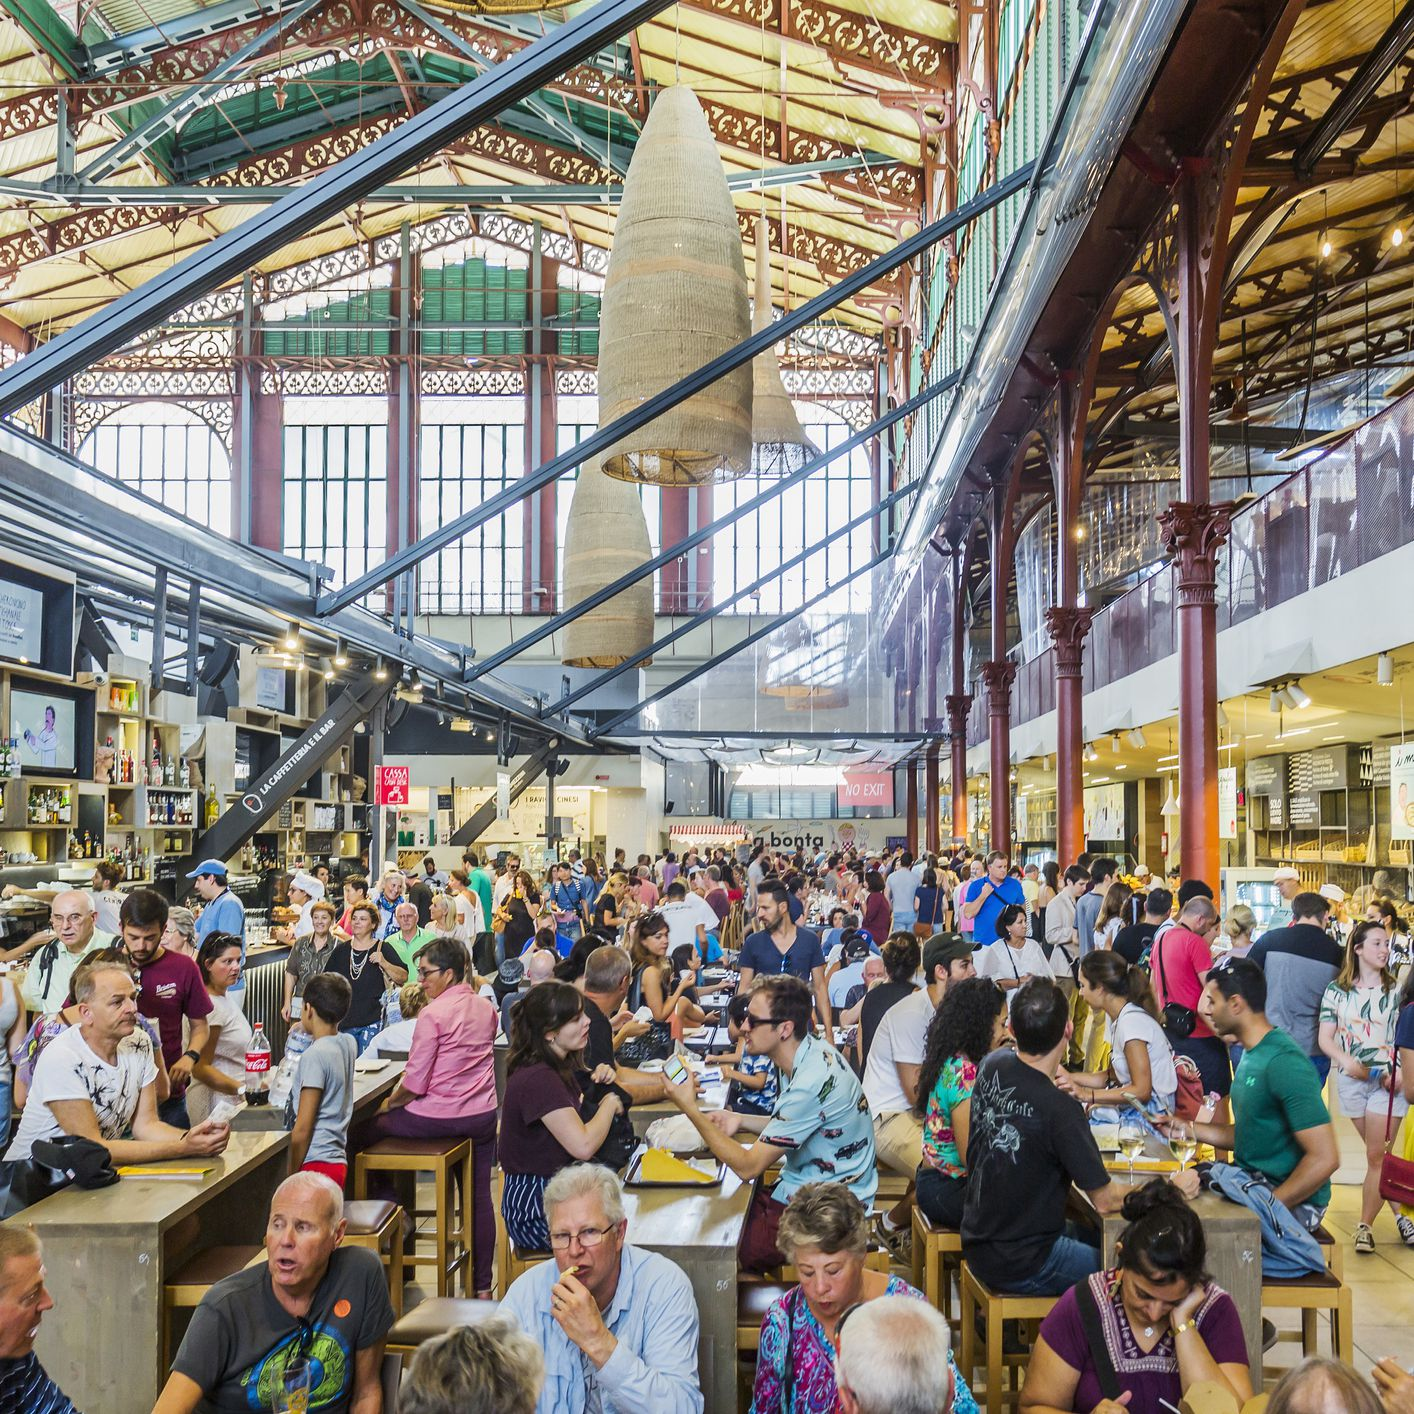 Florence's Mercato Centrale: The Complete Guide